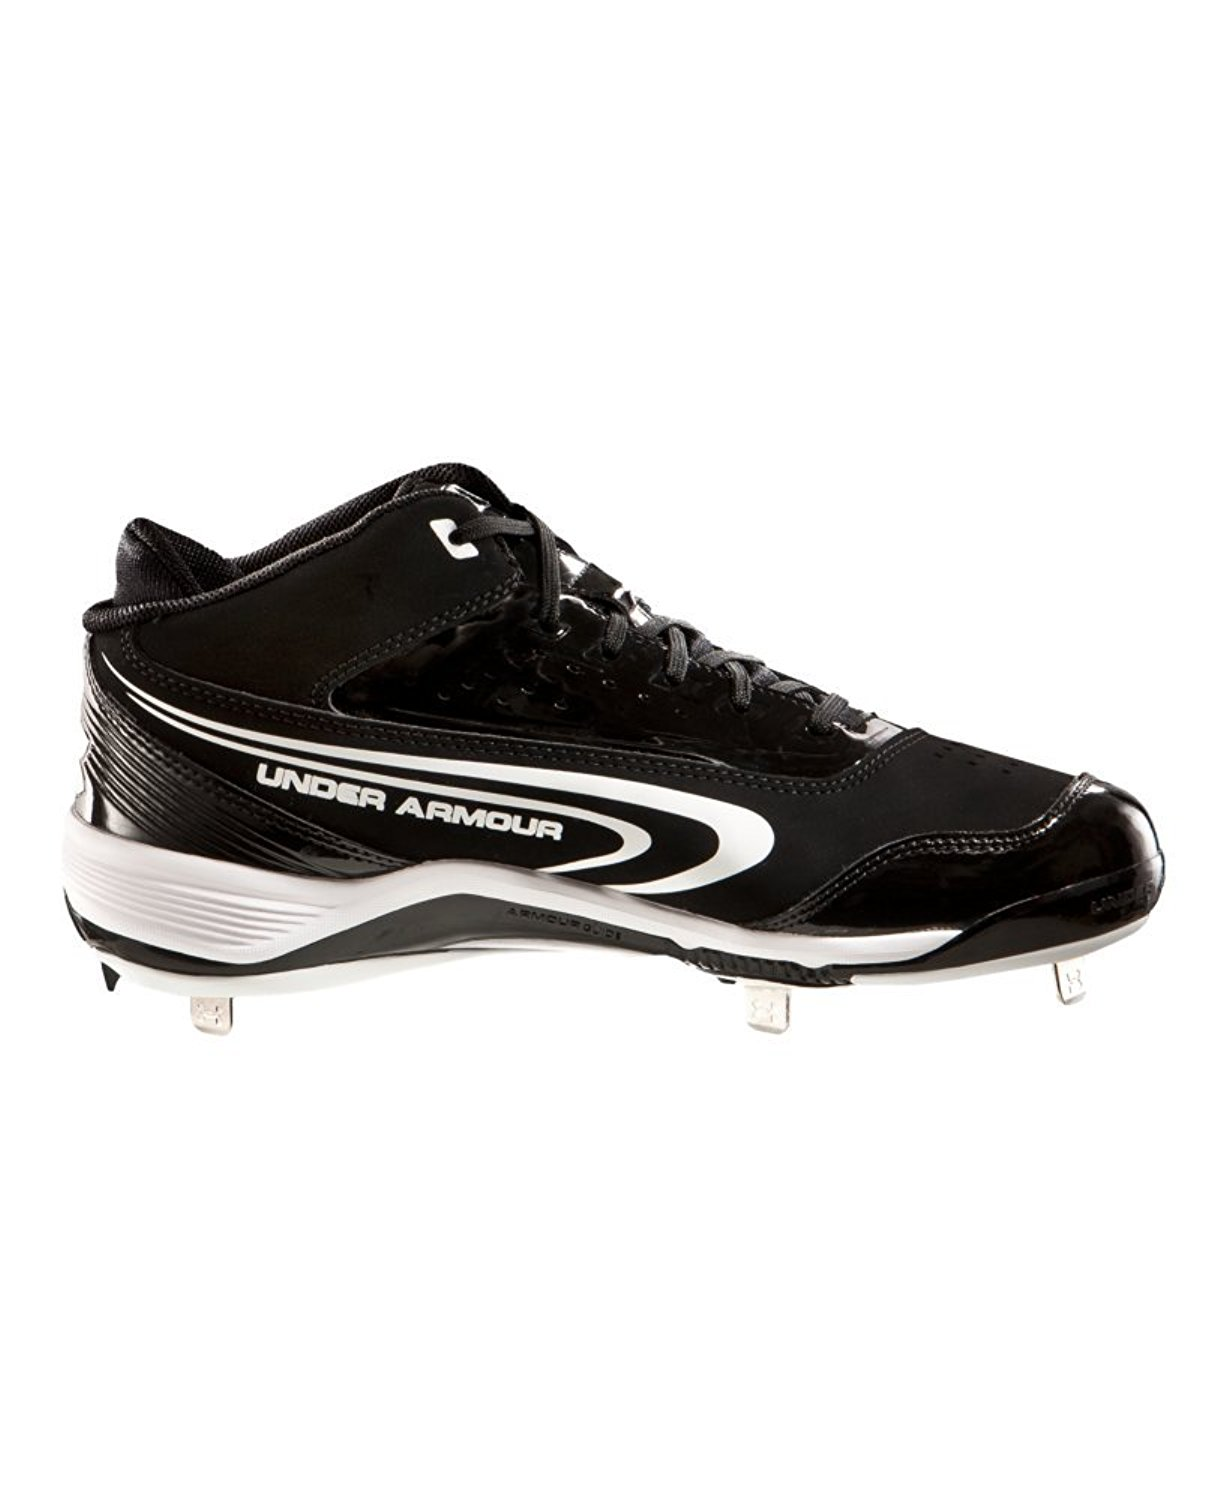 huge discount d2a92 ea471 Get Quotations · Men s UA Ignite III Mid-Cut Metal Baseball Cleats